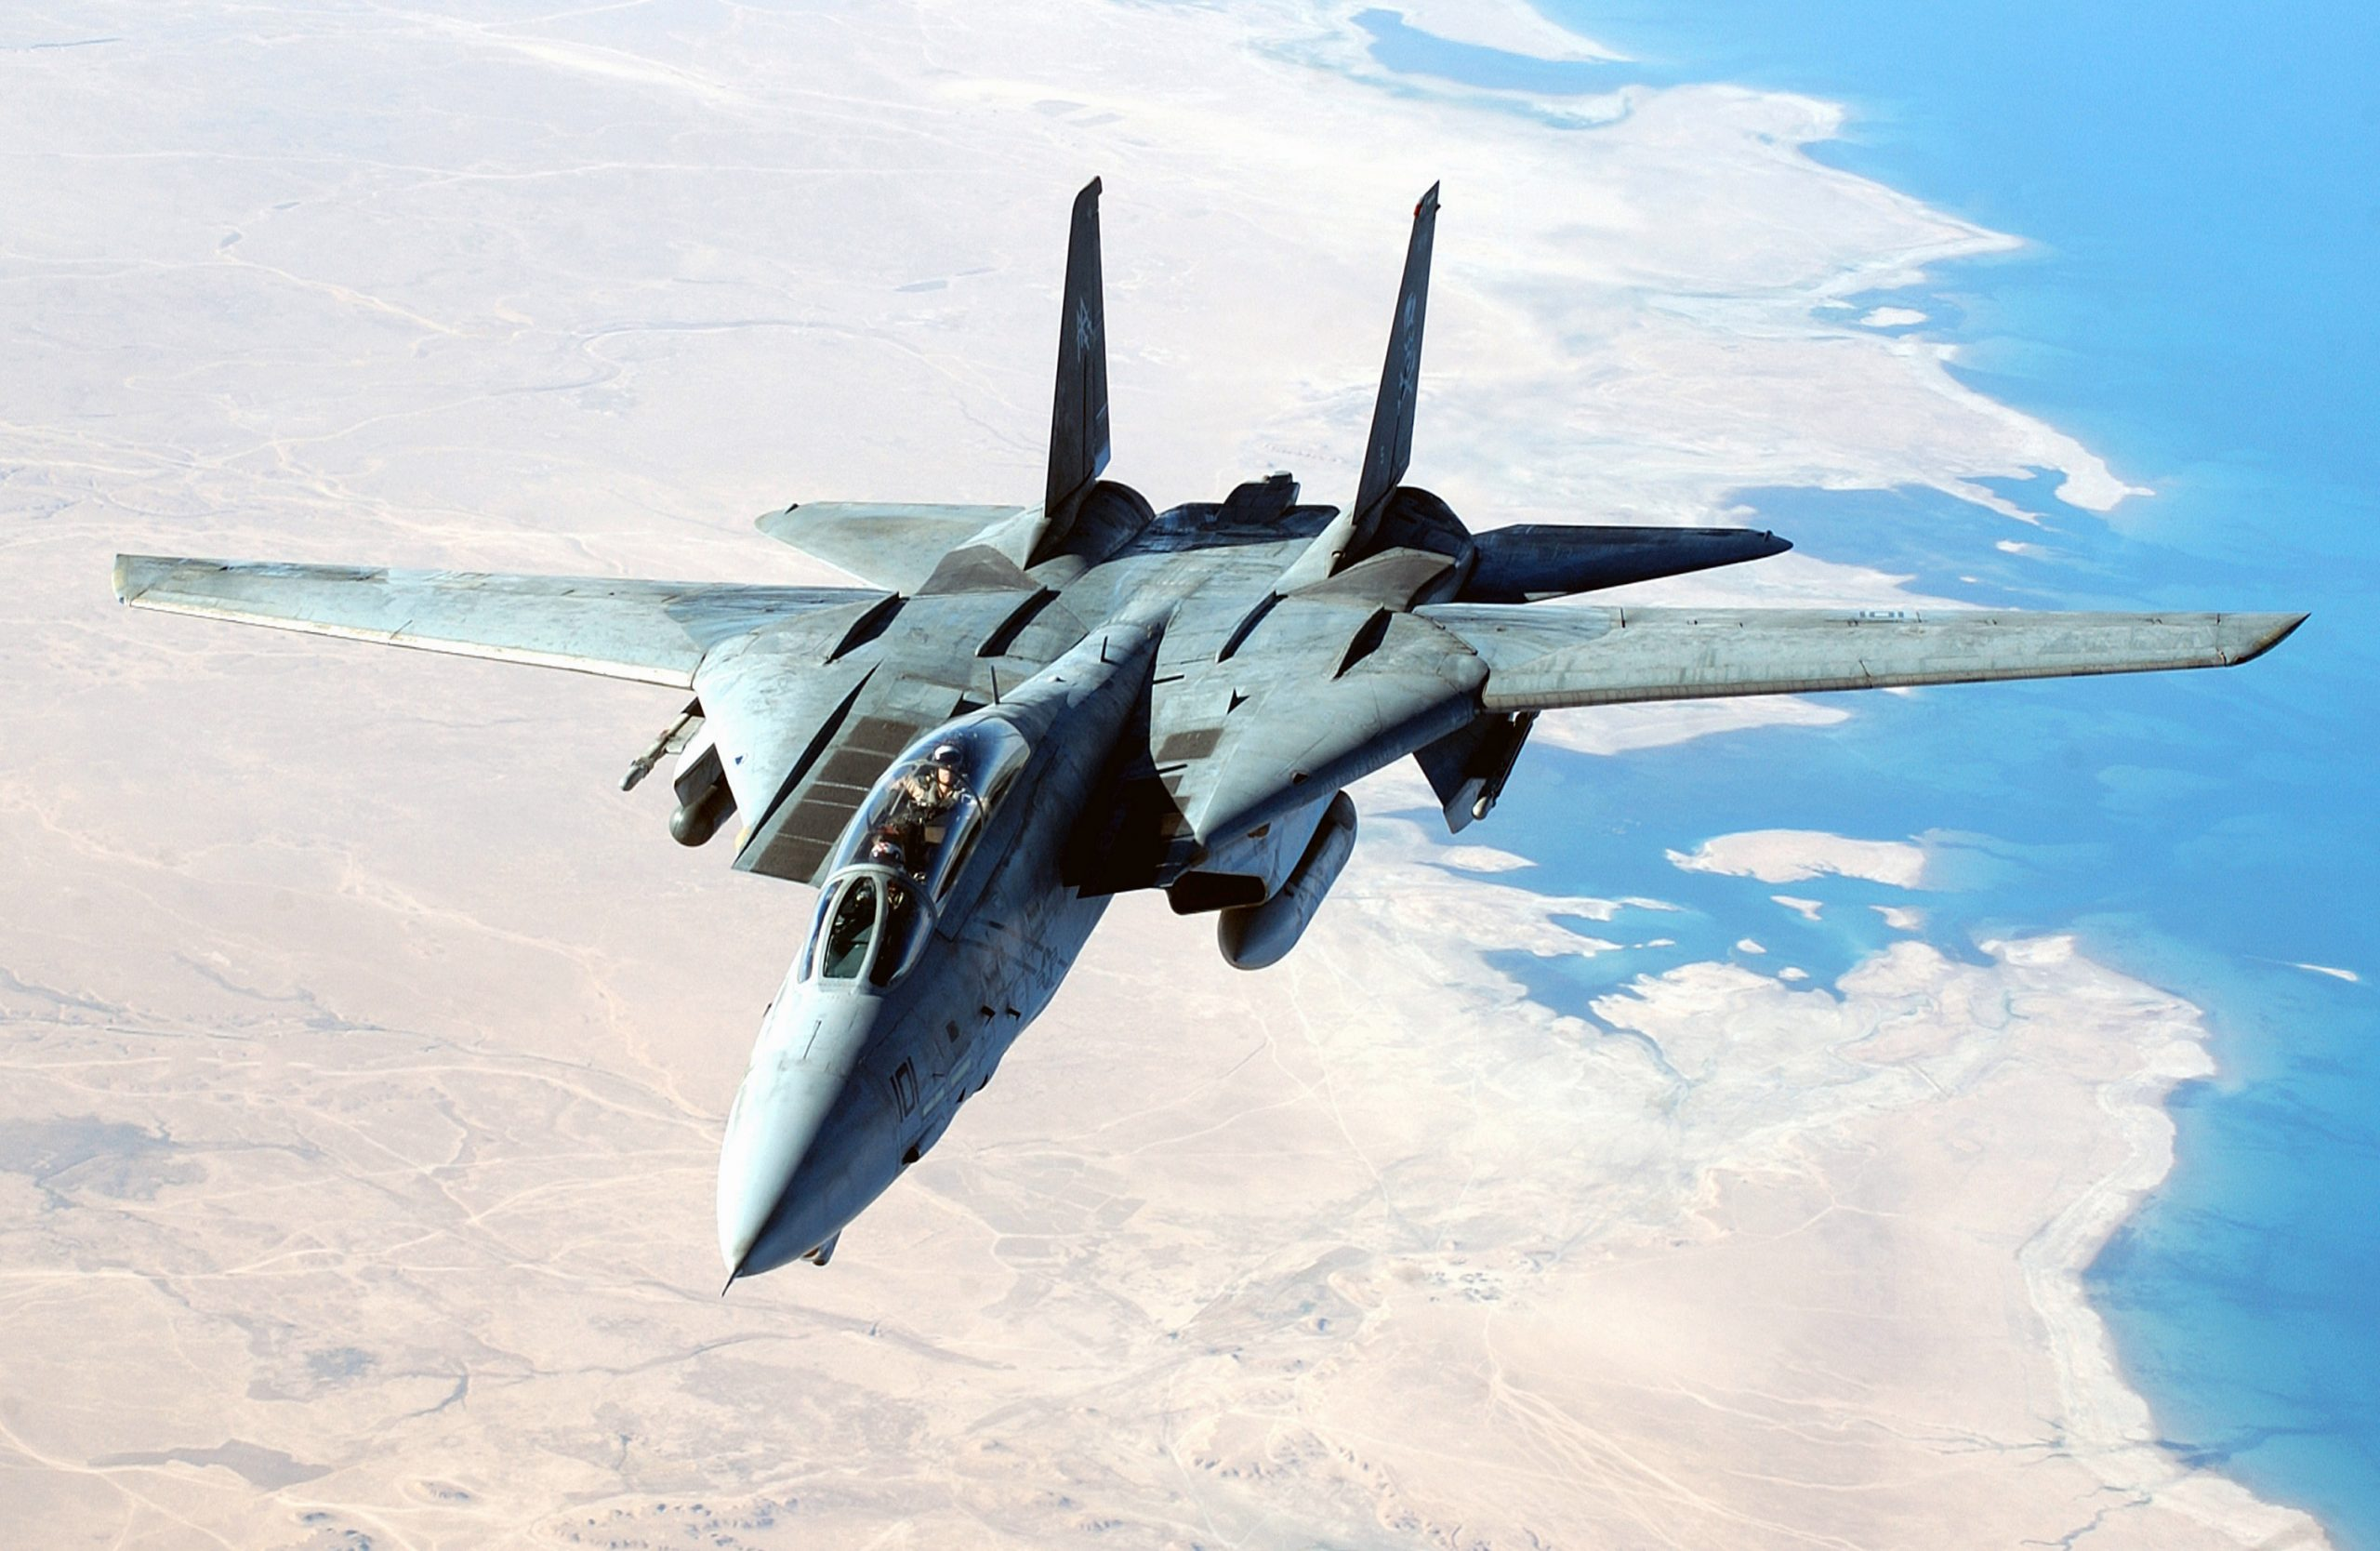 F-14 Tomcat: The Supersonic Fighter - History